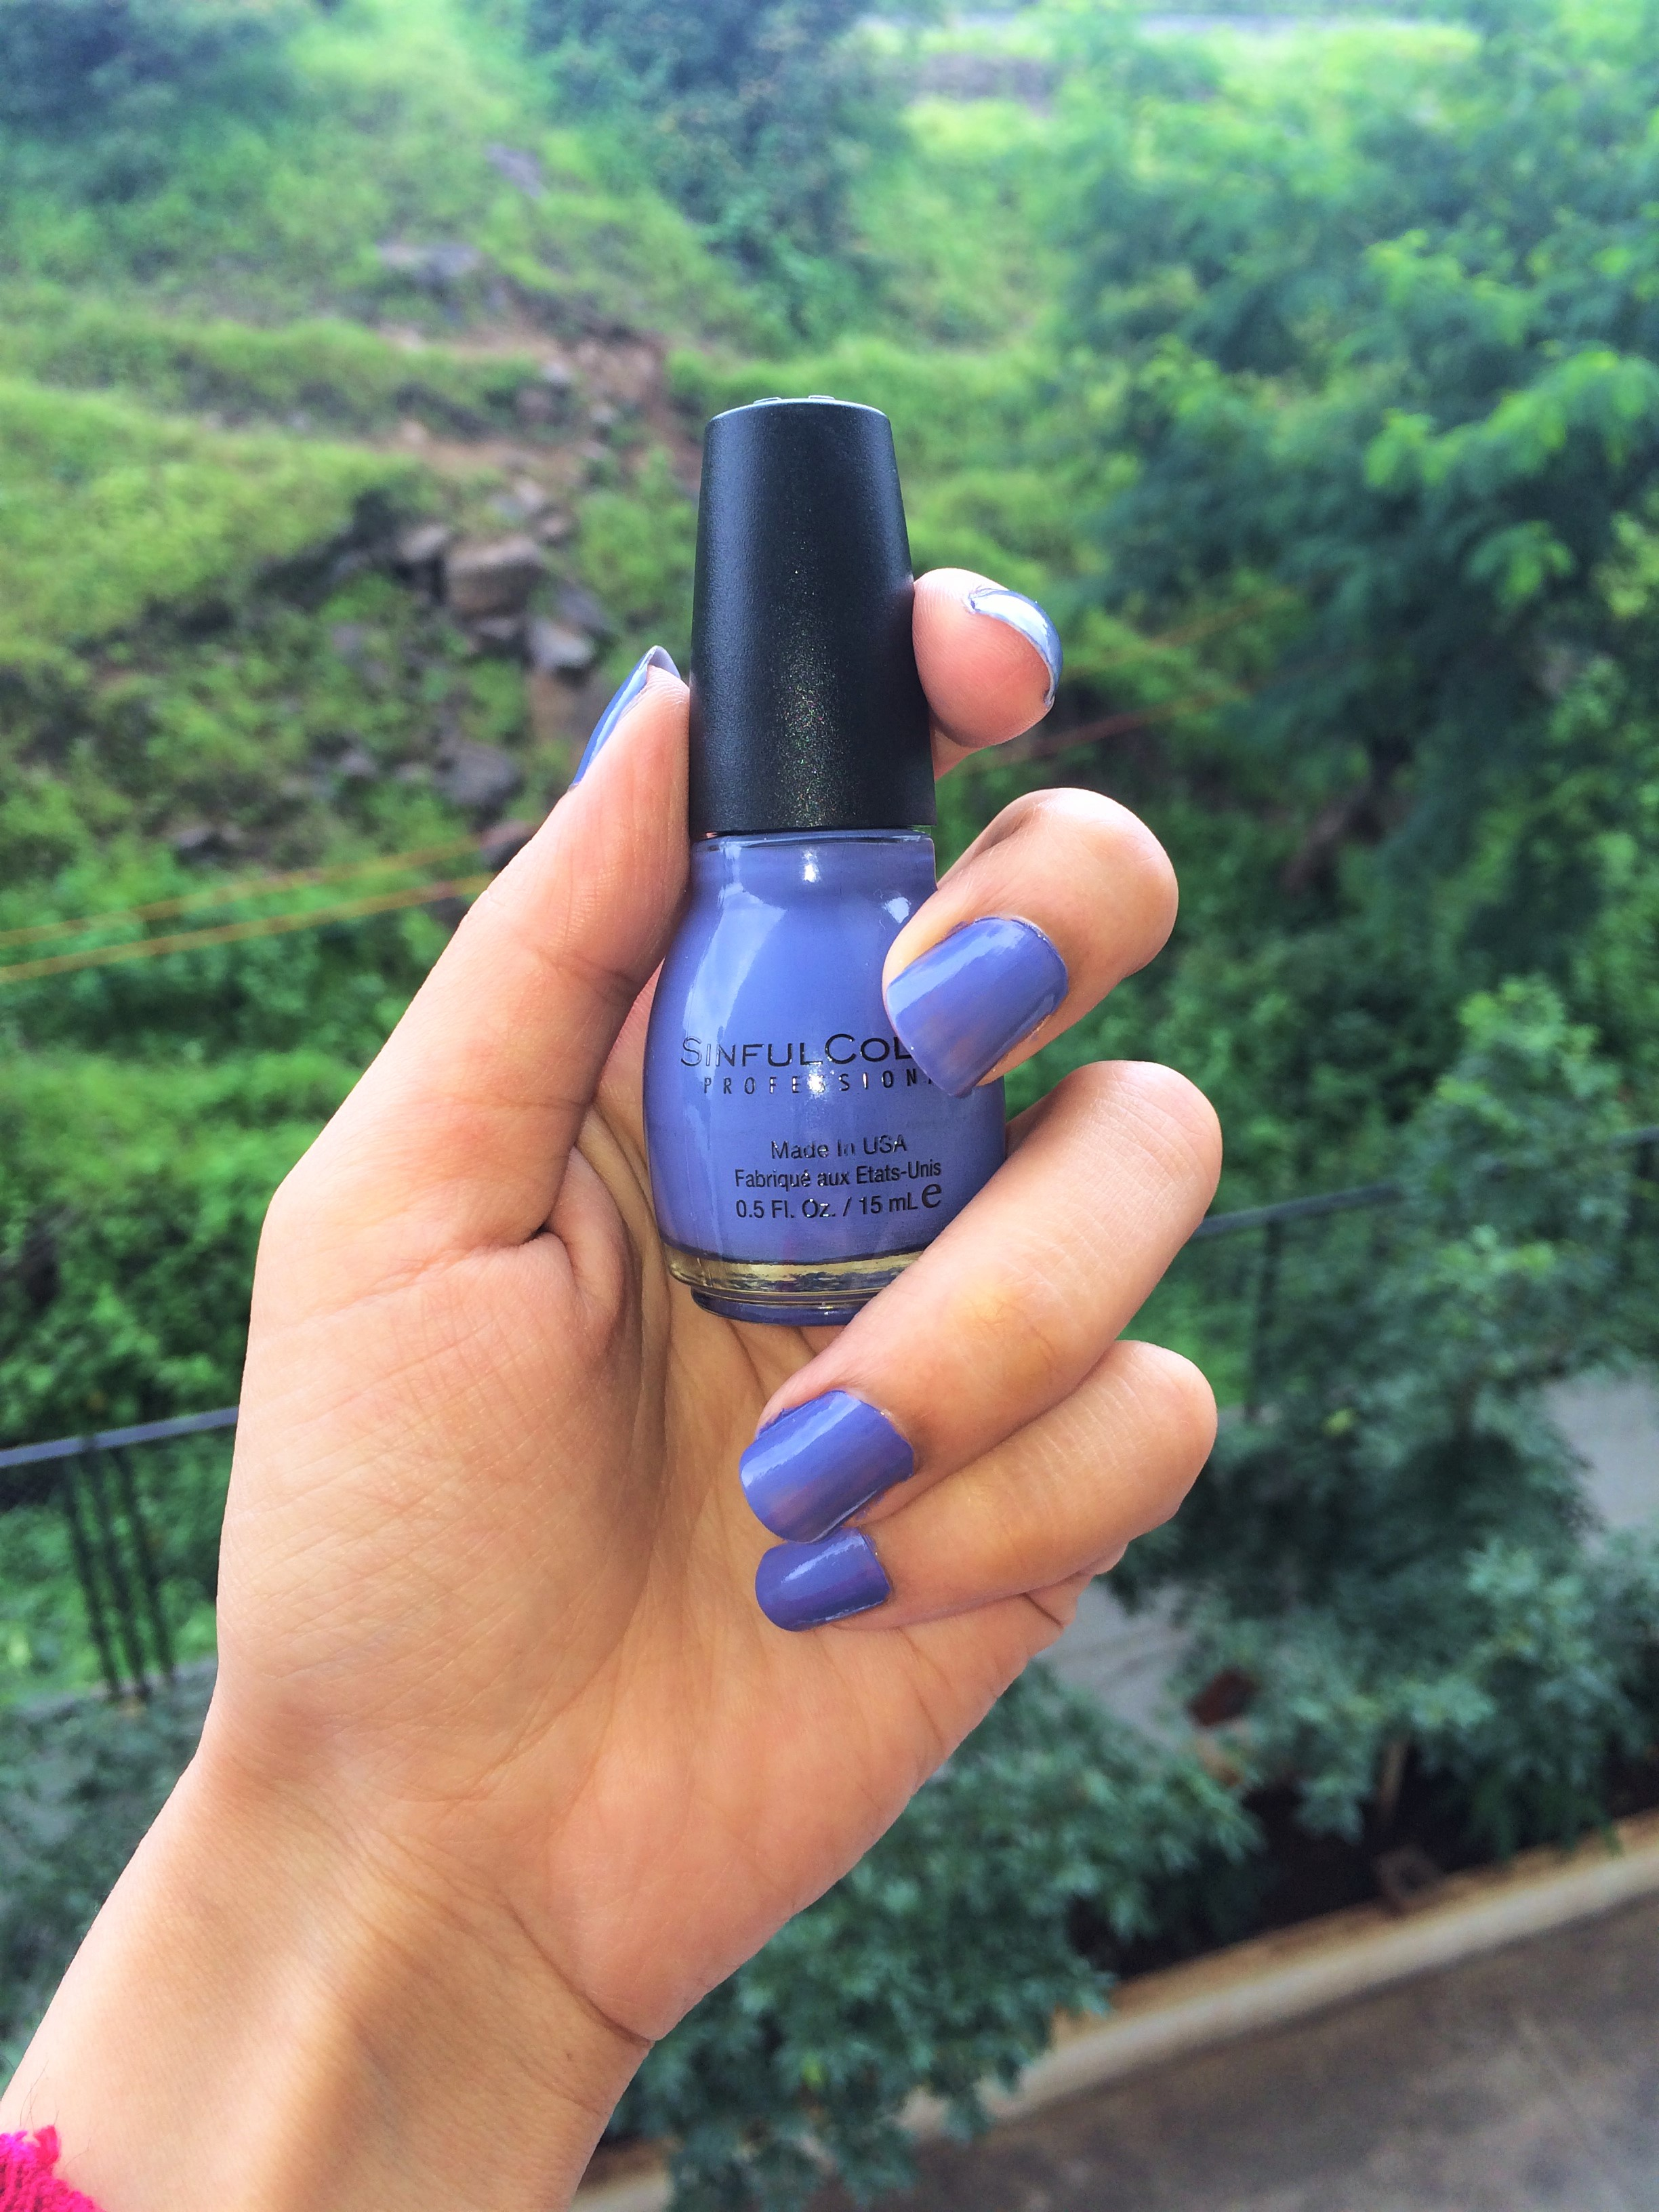 Product Review : Sinful Colors Blue lala Nail Color – Art Of Style